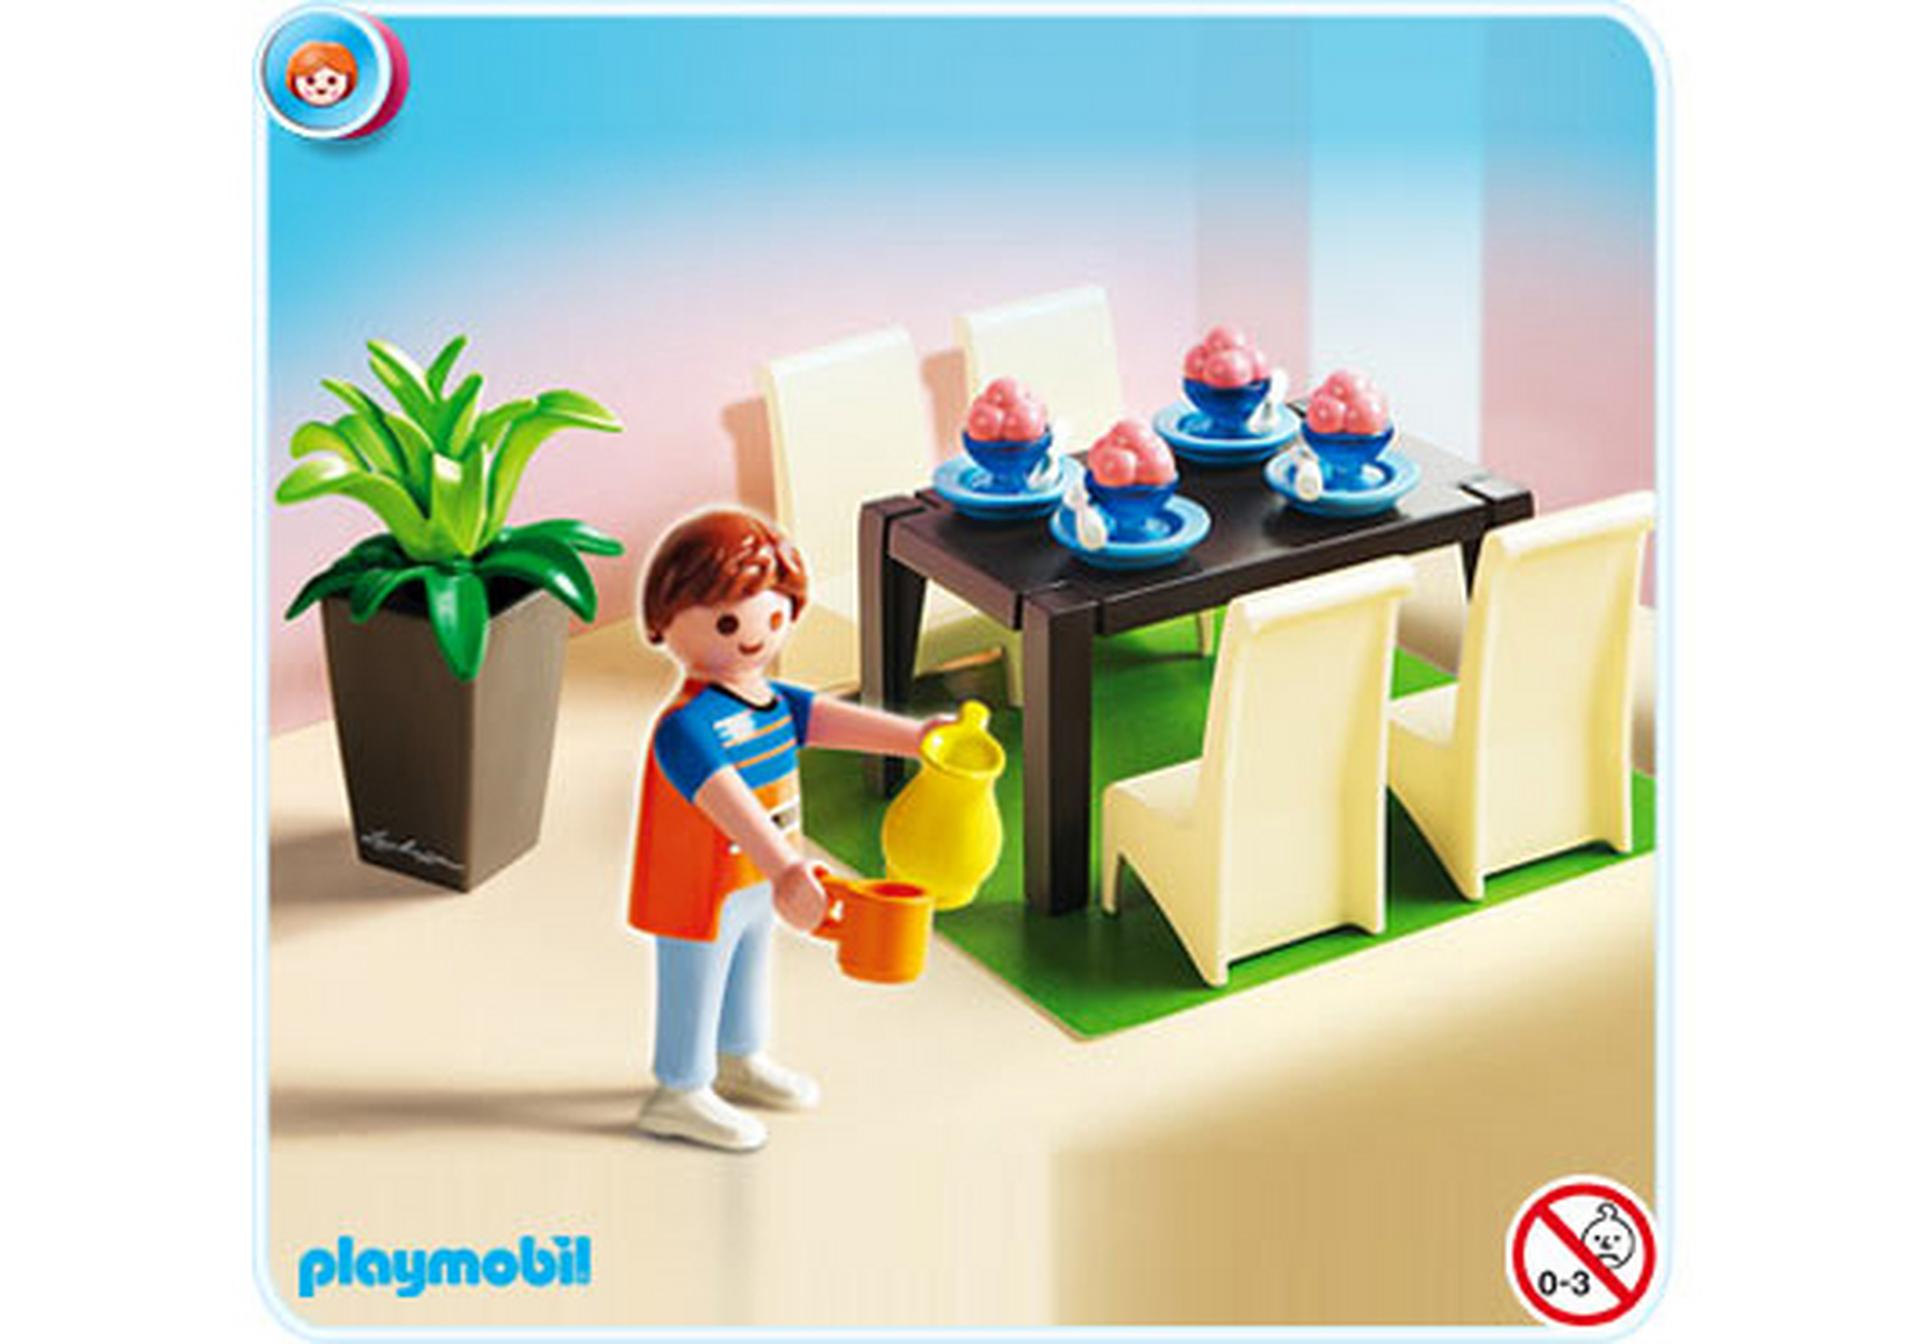 Salle manger 5335 a playmobil france for Salle a manger playmobil city life